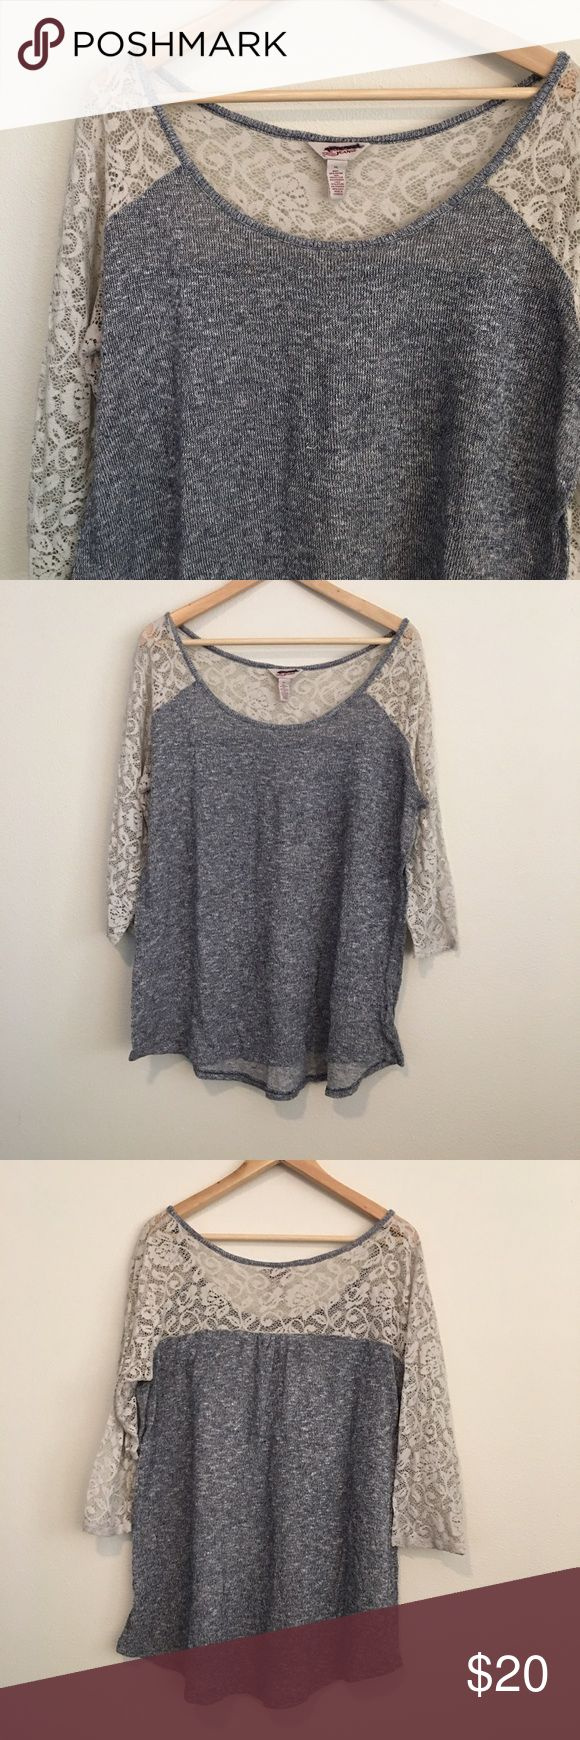 Gray and cream Lace shirt Cute gray and cream Lace top. Very comfortable and cute. Size XL. Arizona Jean Company Tops